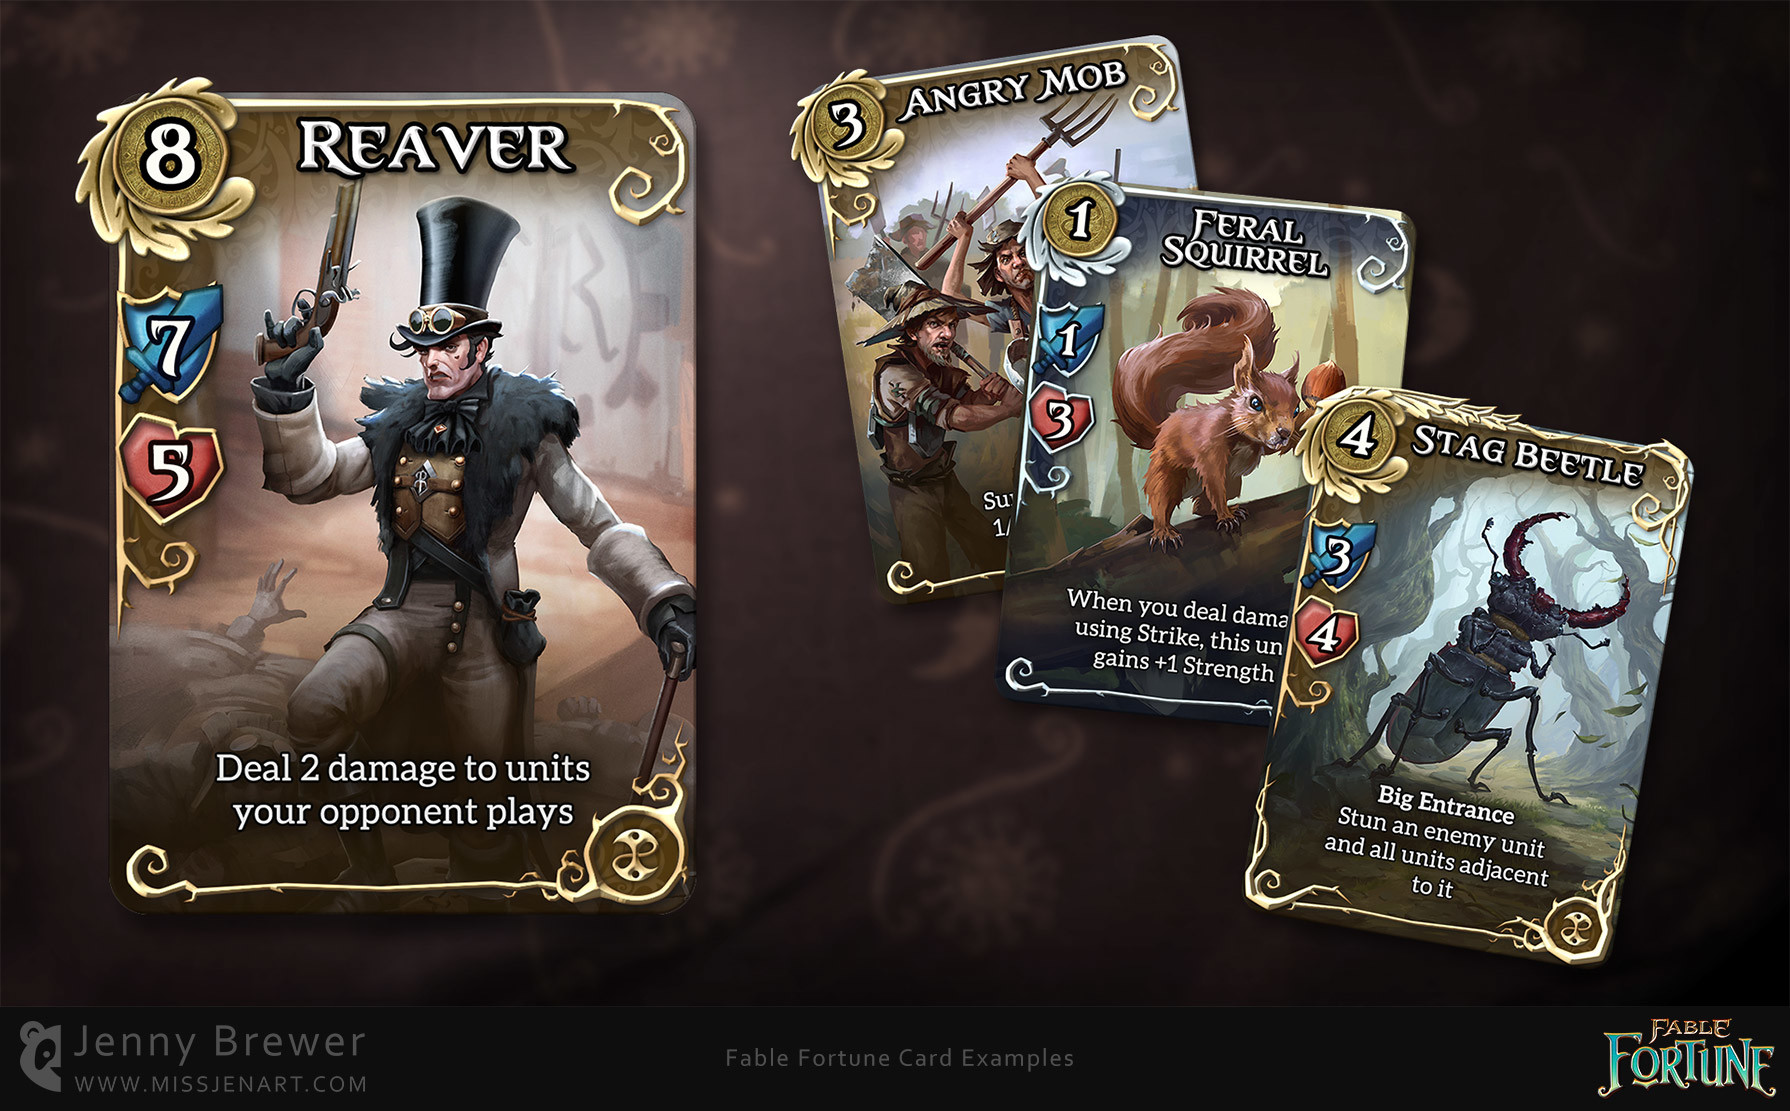 Card UI design with concept art in place.